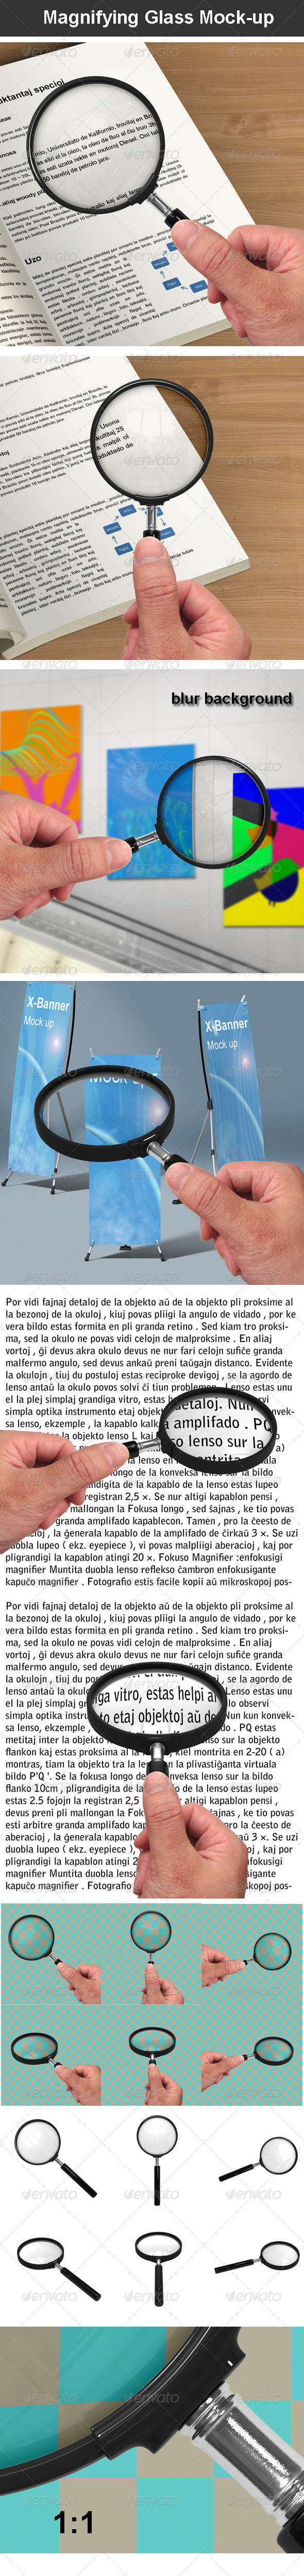 GraphicRiver Magnifying Glass Mock-up 6907540